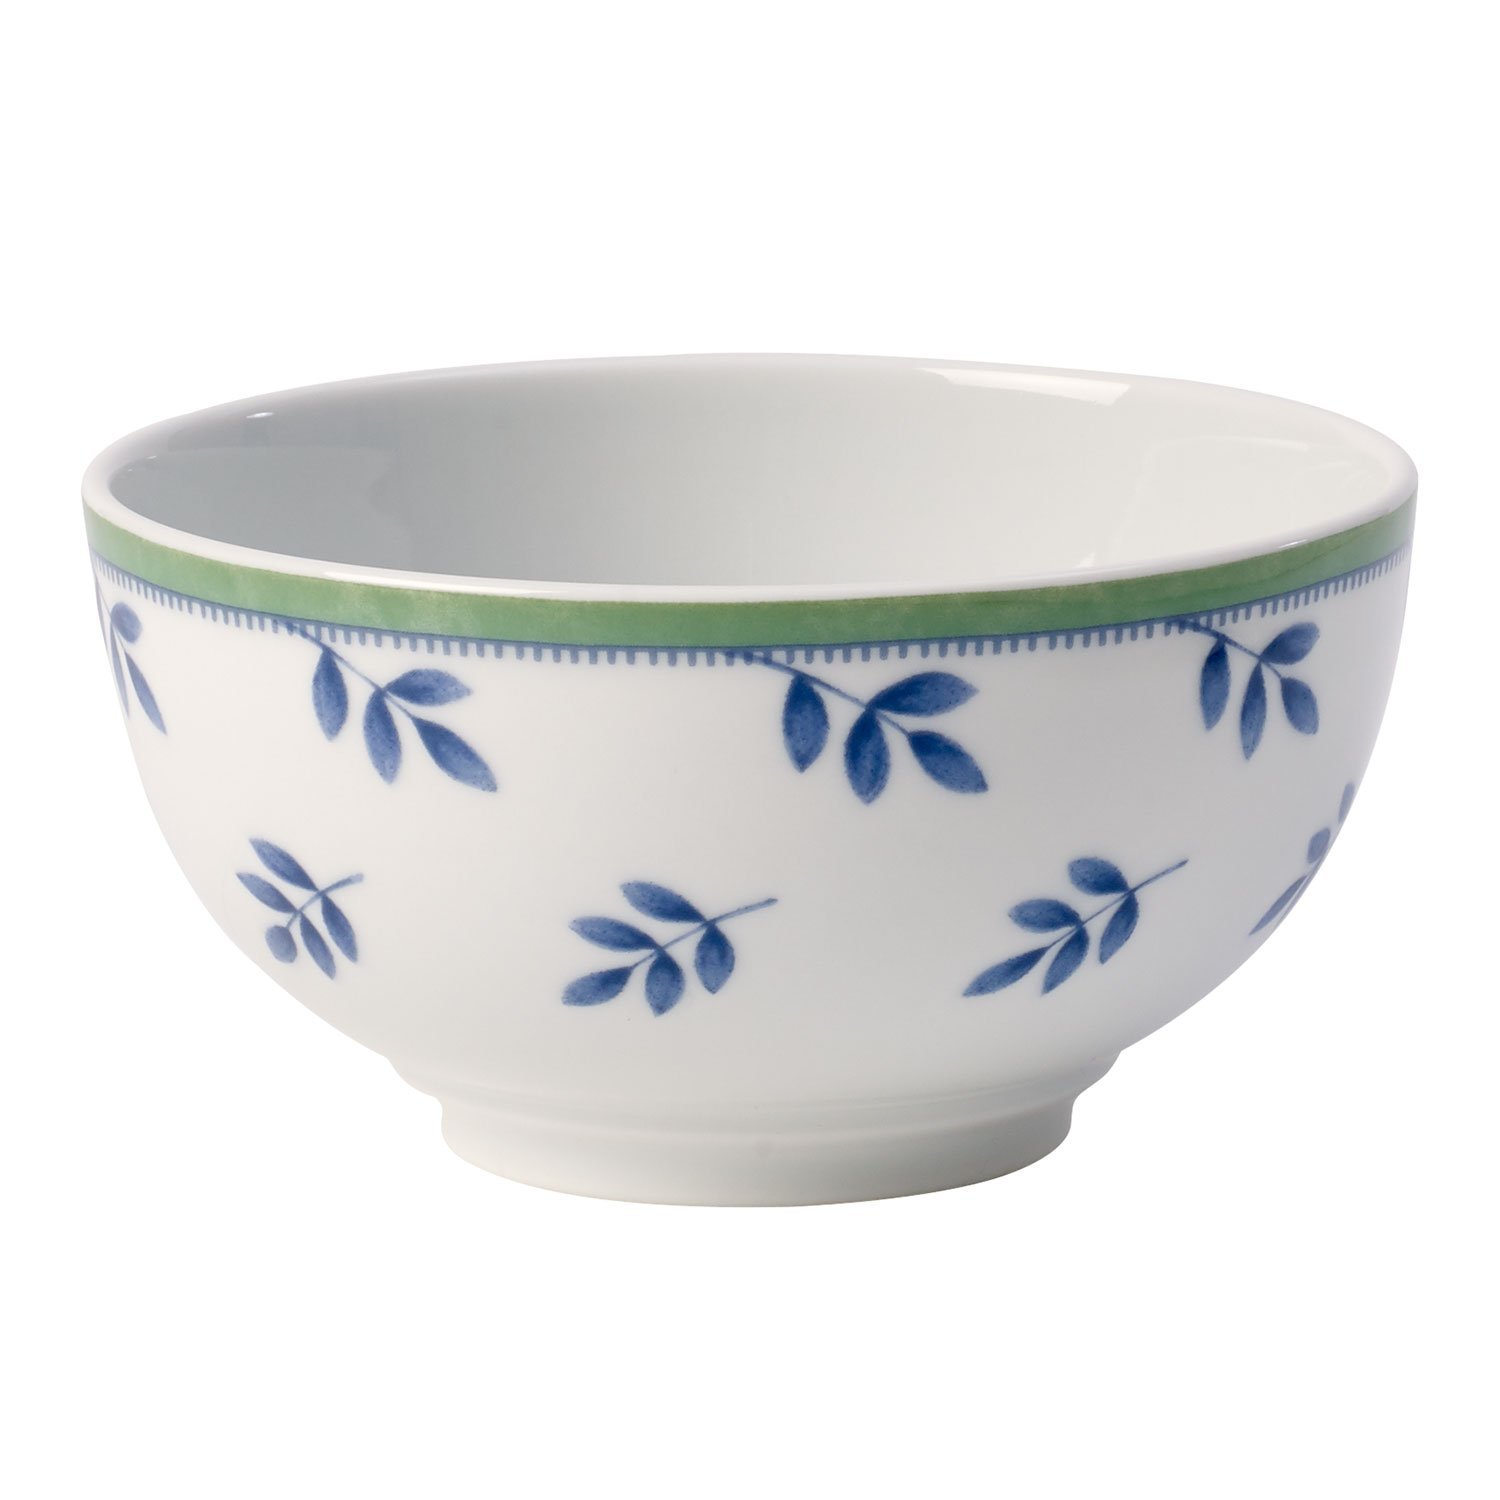 Villeroy & Boch Switch-3 Decorated Rice Bowl 1026961905